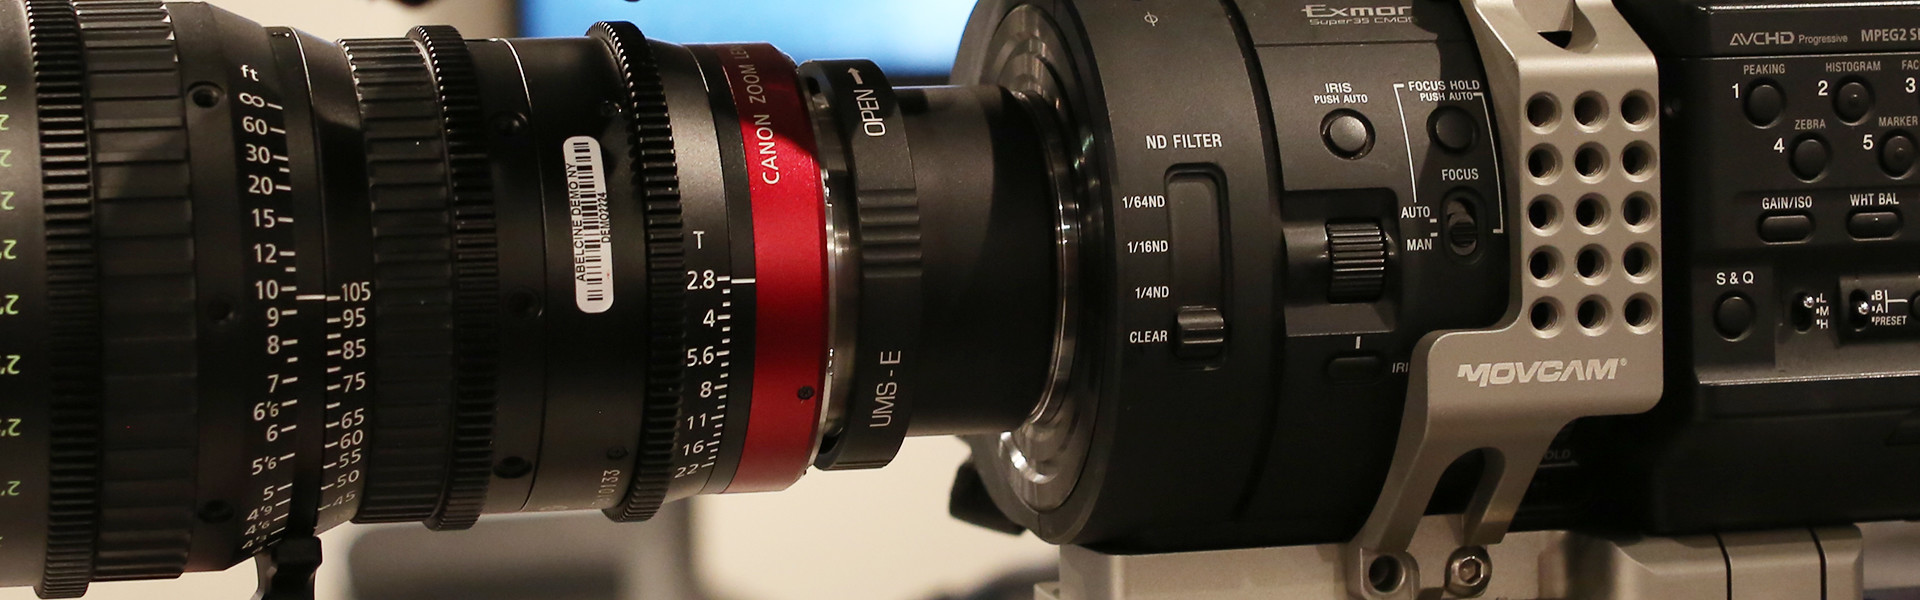 Header image for article Evaluating the Canon 30-300 Cinema Zoom